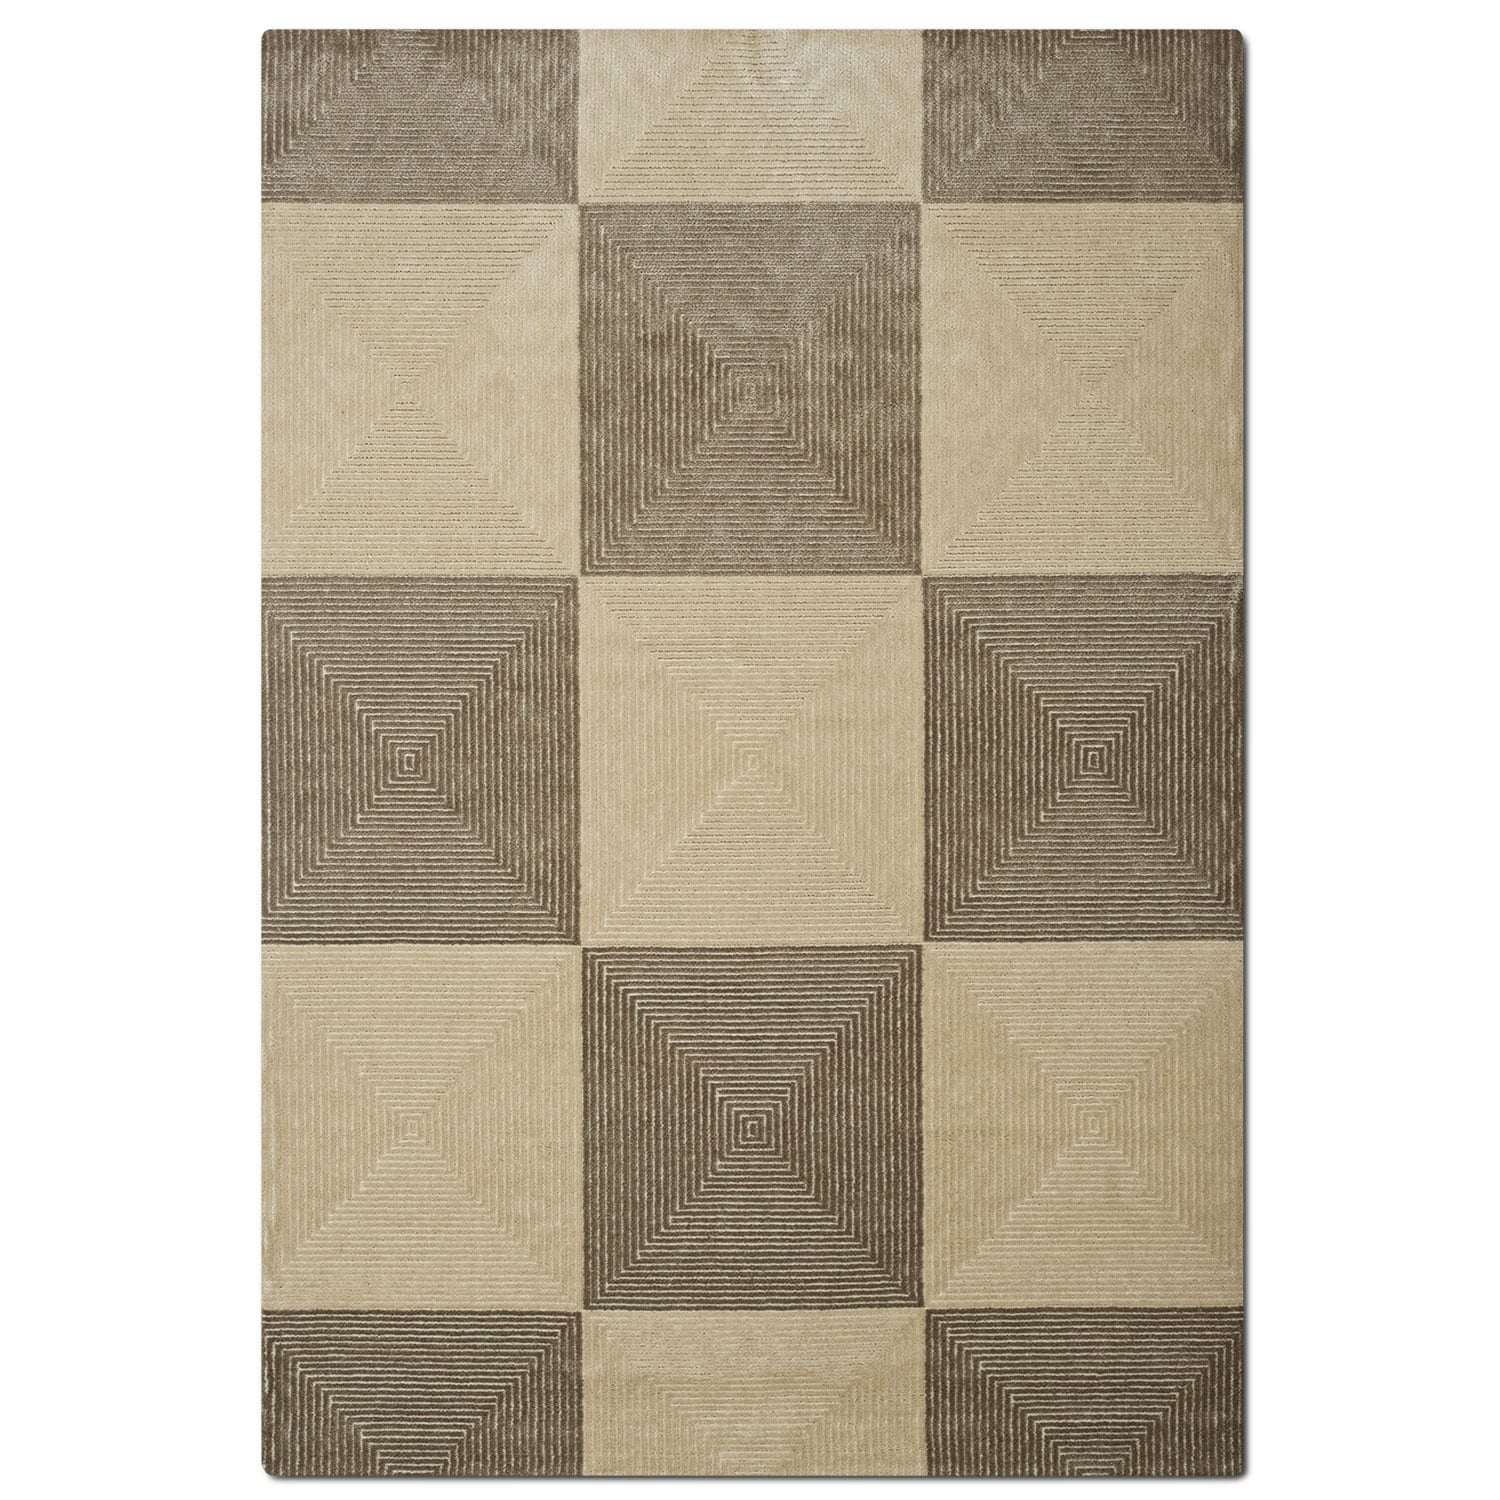 Rugs - Metro Area Rug - Gray and Charcoal